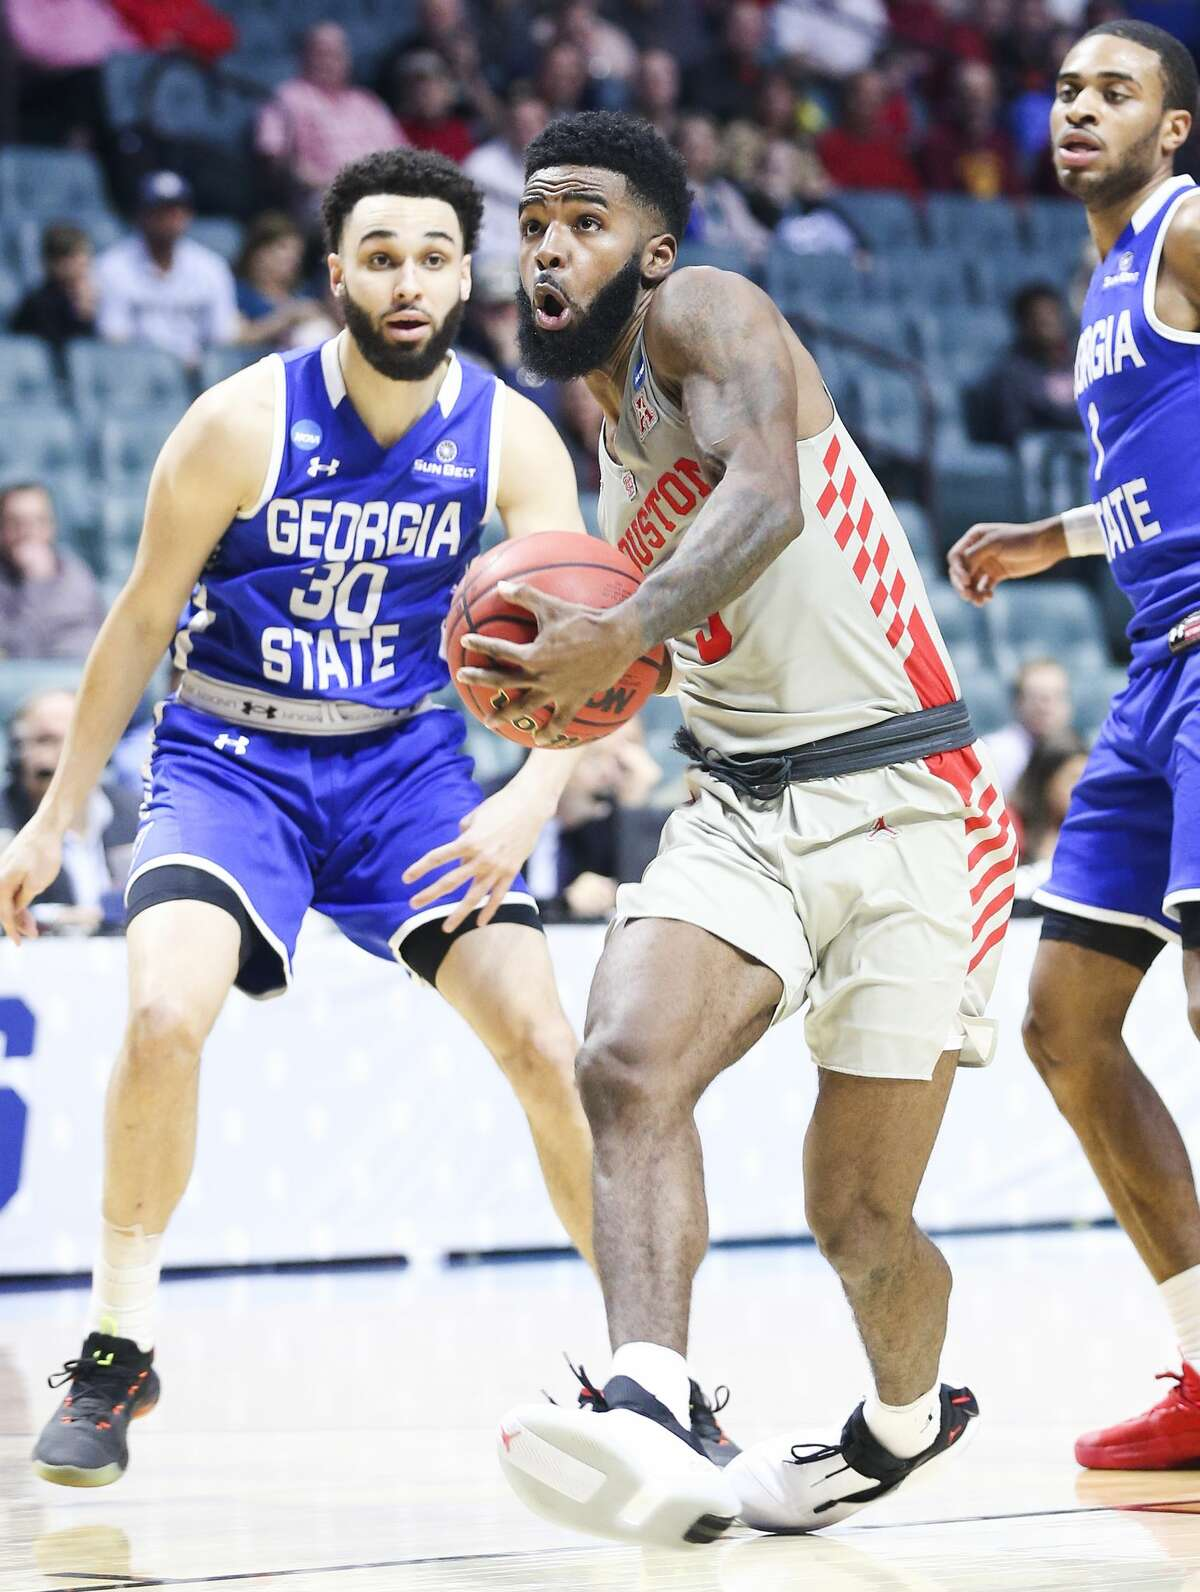 Houston Cougars guard Corey Davis Jr. (5) drives past Georgia State Panthers forward Jeff Thomas (30) as he makes his way to the basket in the first round of NCAA playoffs at BAK Center on Friday, March 22, 2019 in Tulsa. Houston won the game 84-55.